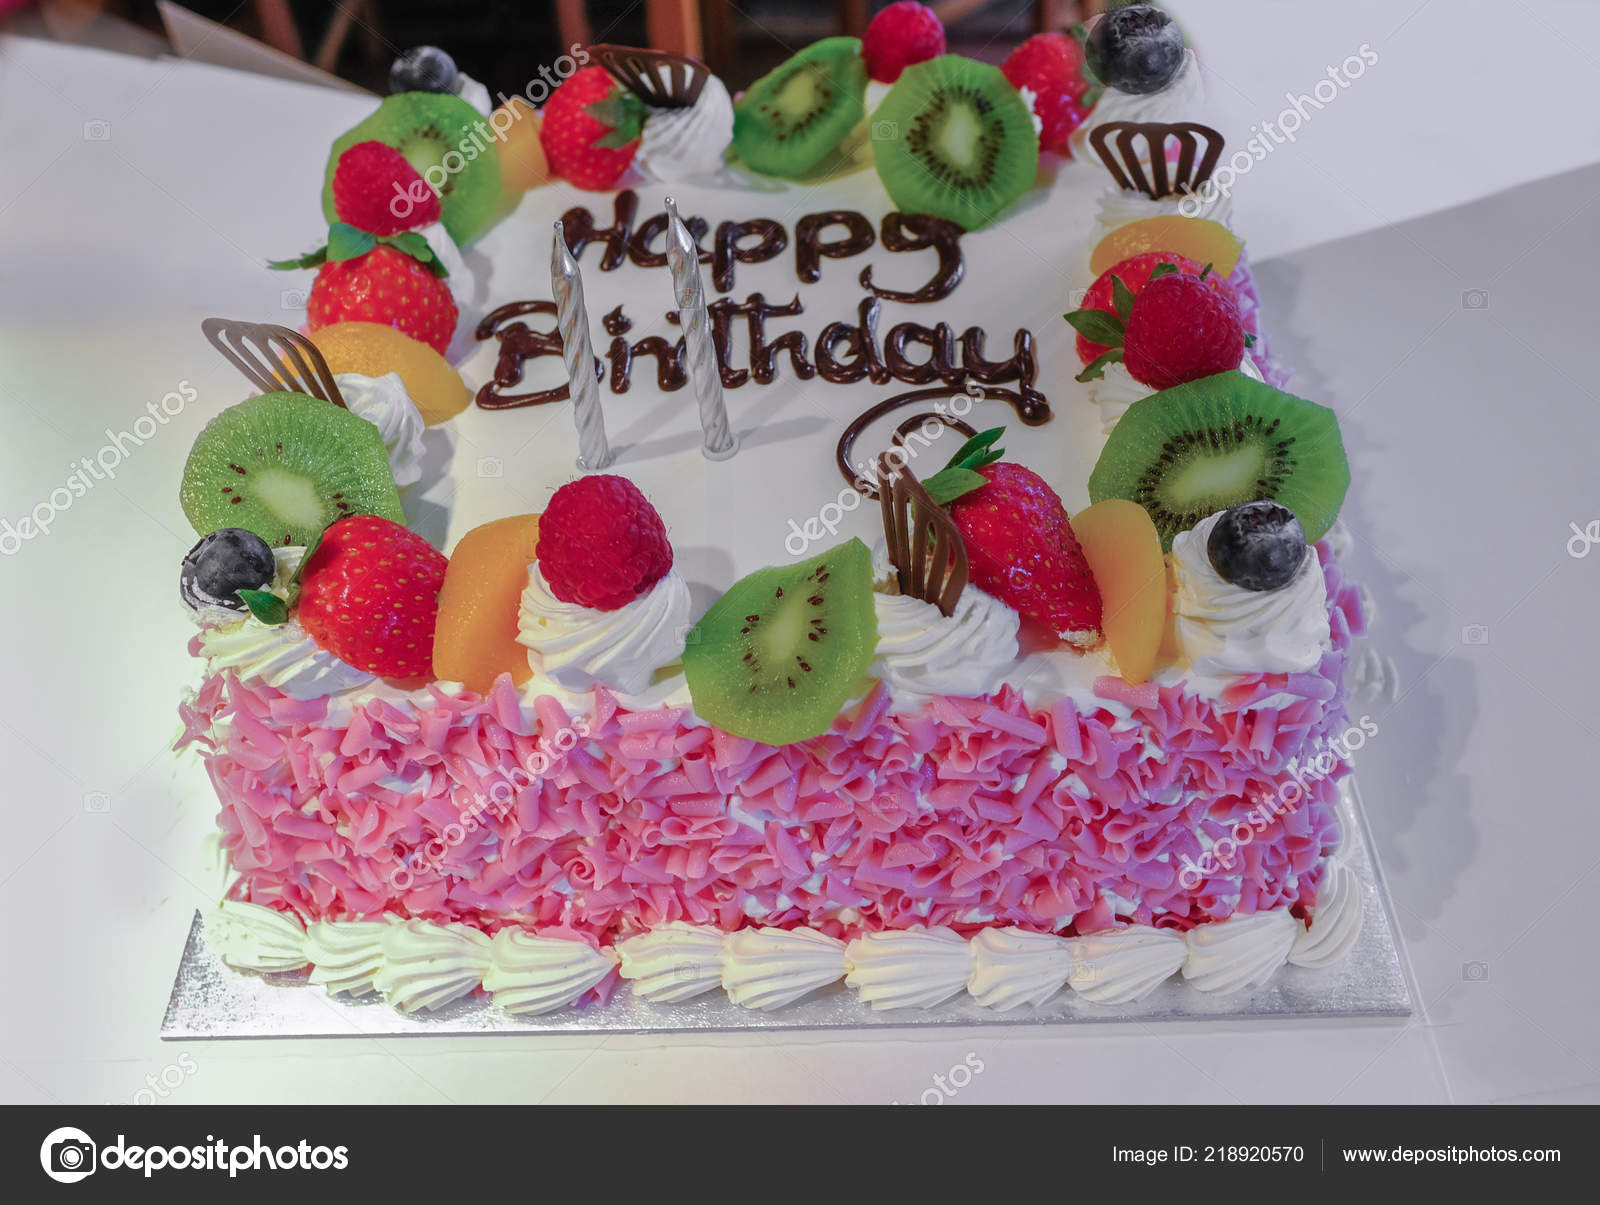 Cream Birthday Cake With Fresh Fruit On The Top And Pink Flakes Decorating Sides Happy Is Written In Chocolate Icing Two Silver Candles